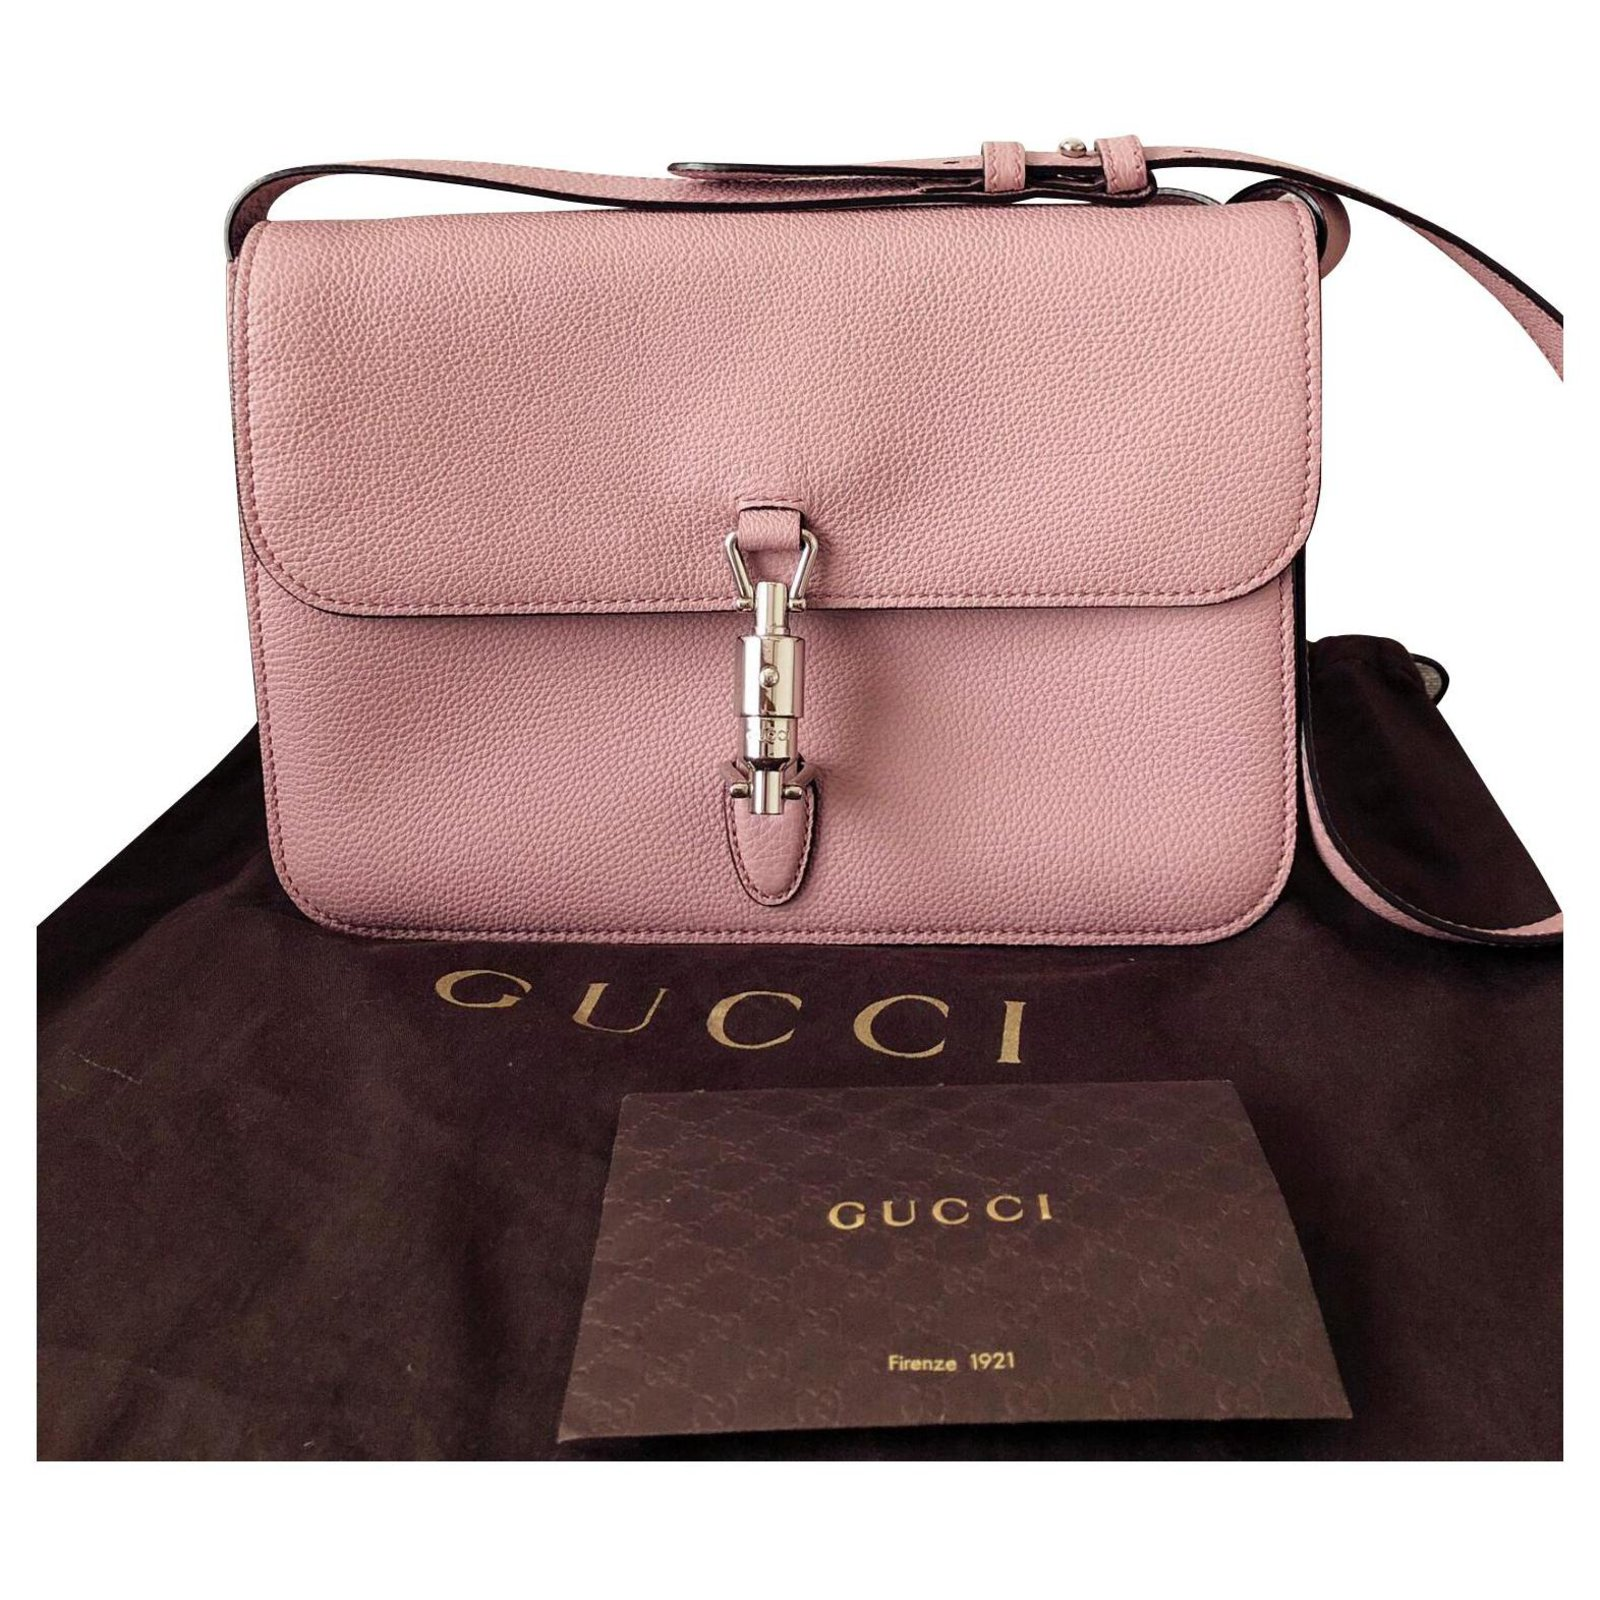 Gucci Jackie Bag Handbags Leather Pink Ref 122214